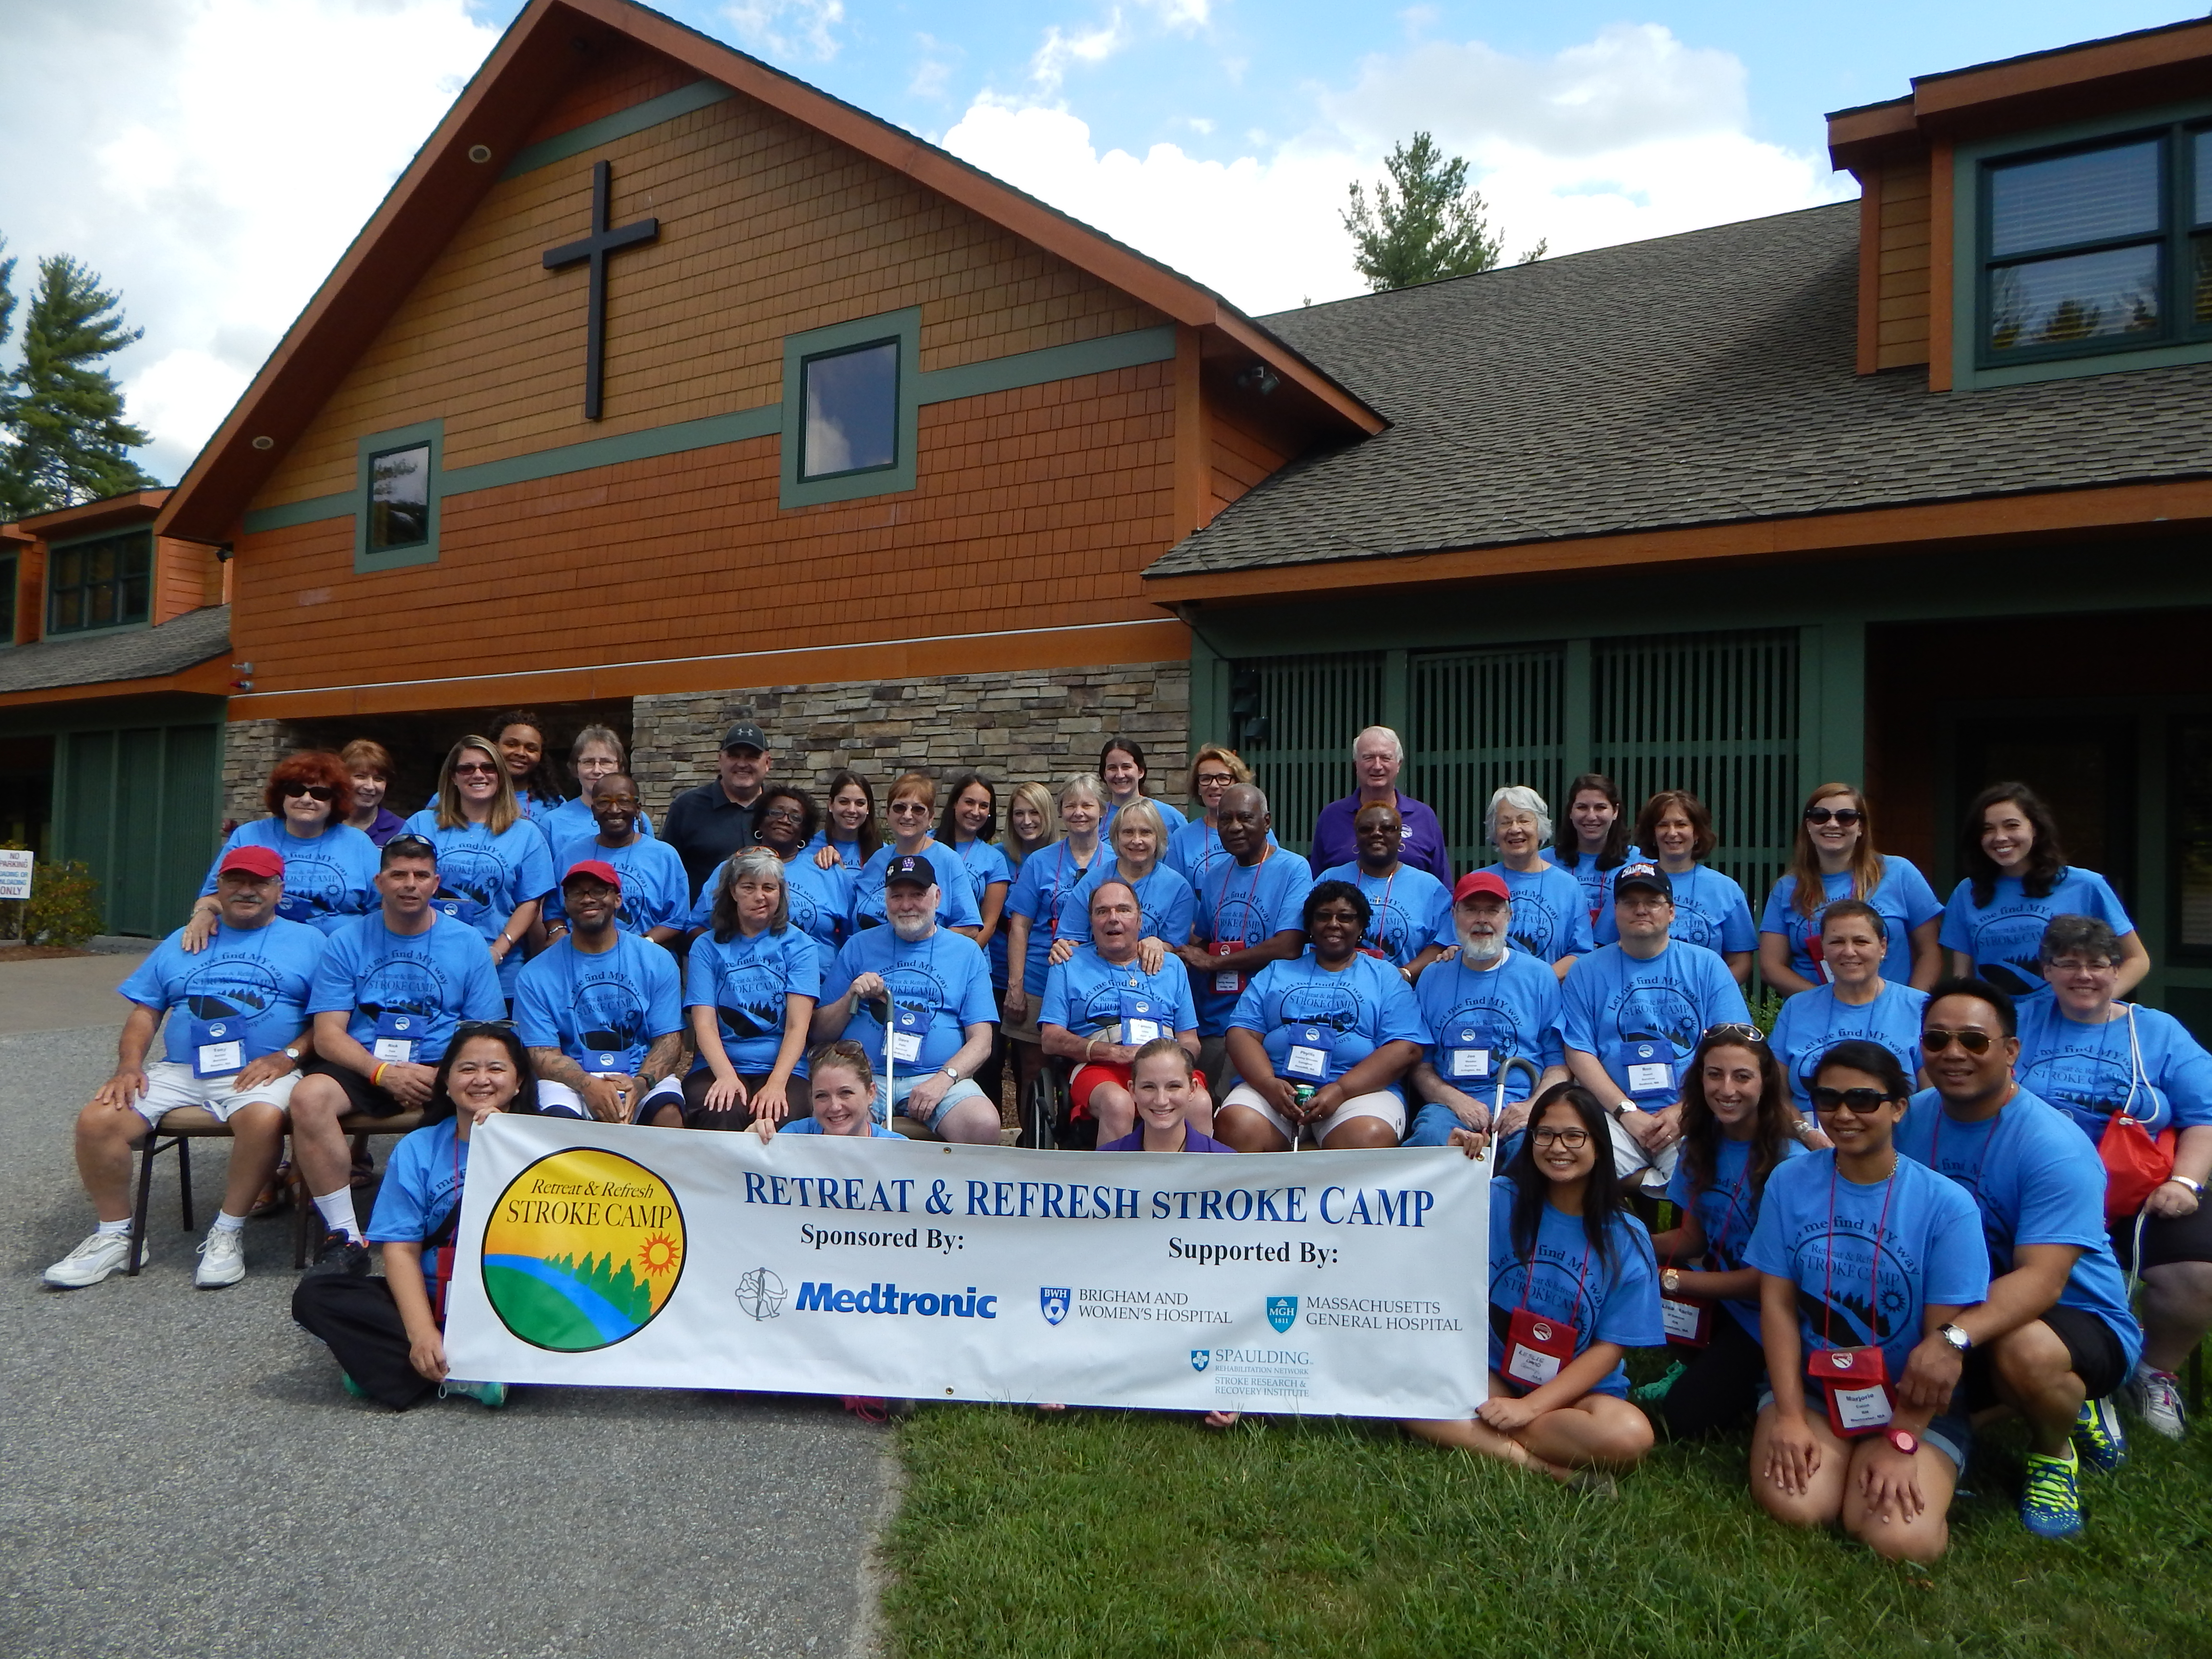 Participants of this year's Retreat & Refresh Stroke Camp, the first such event in New England